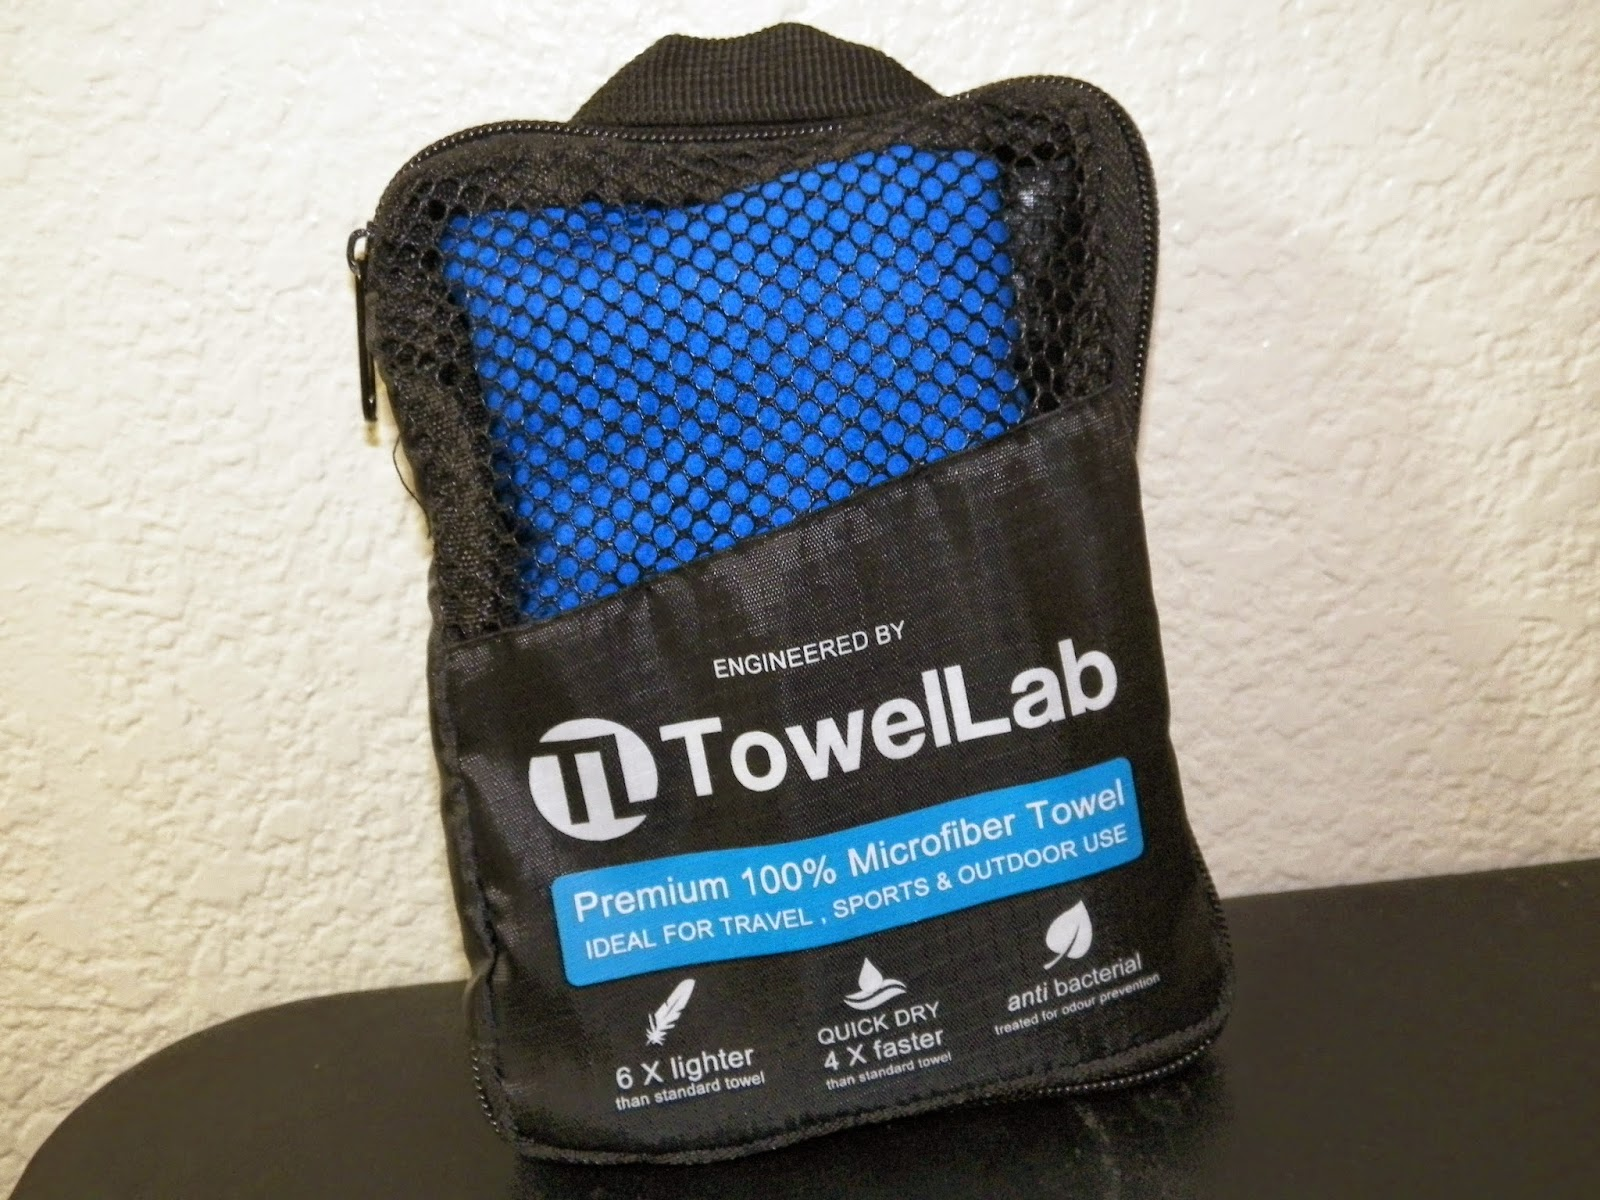 TowelLabMicrofiberTowel.jpg